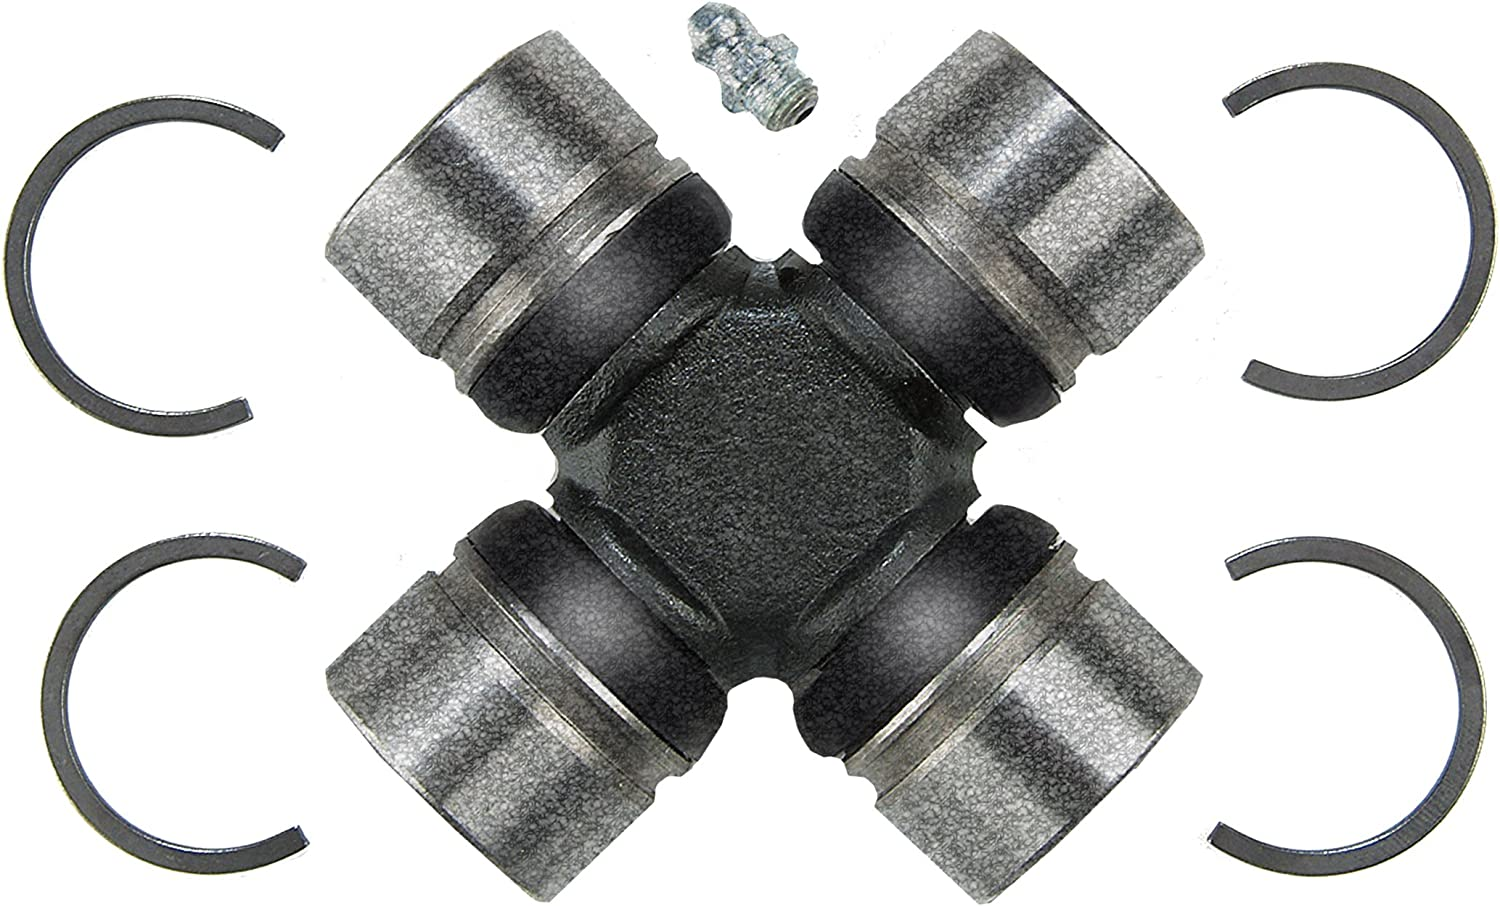 Quality inspection ACDelco Professional U-Joint 45U0165 Ranking TOP3